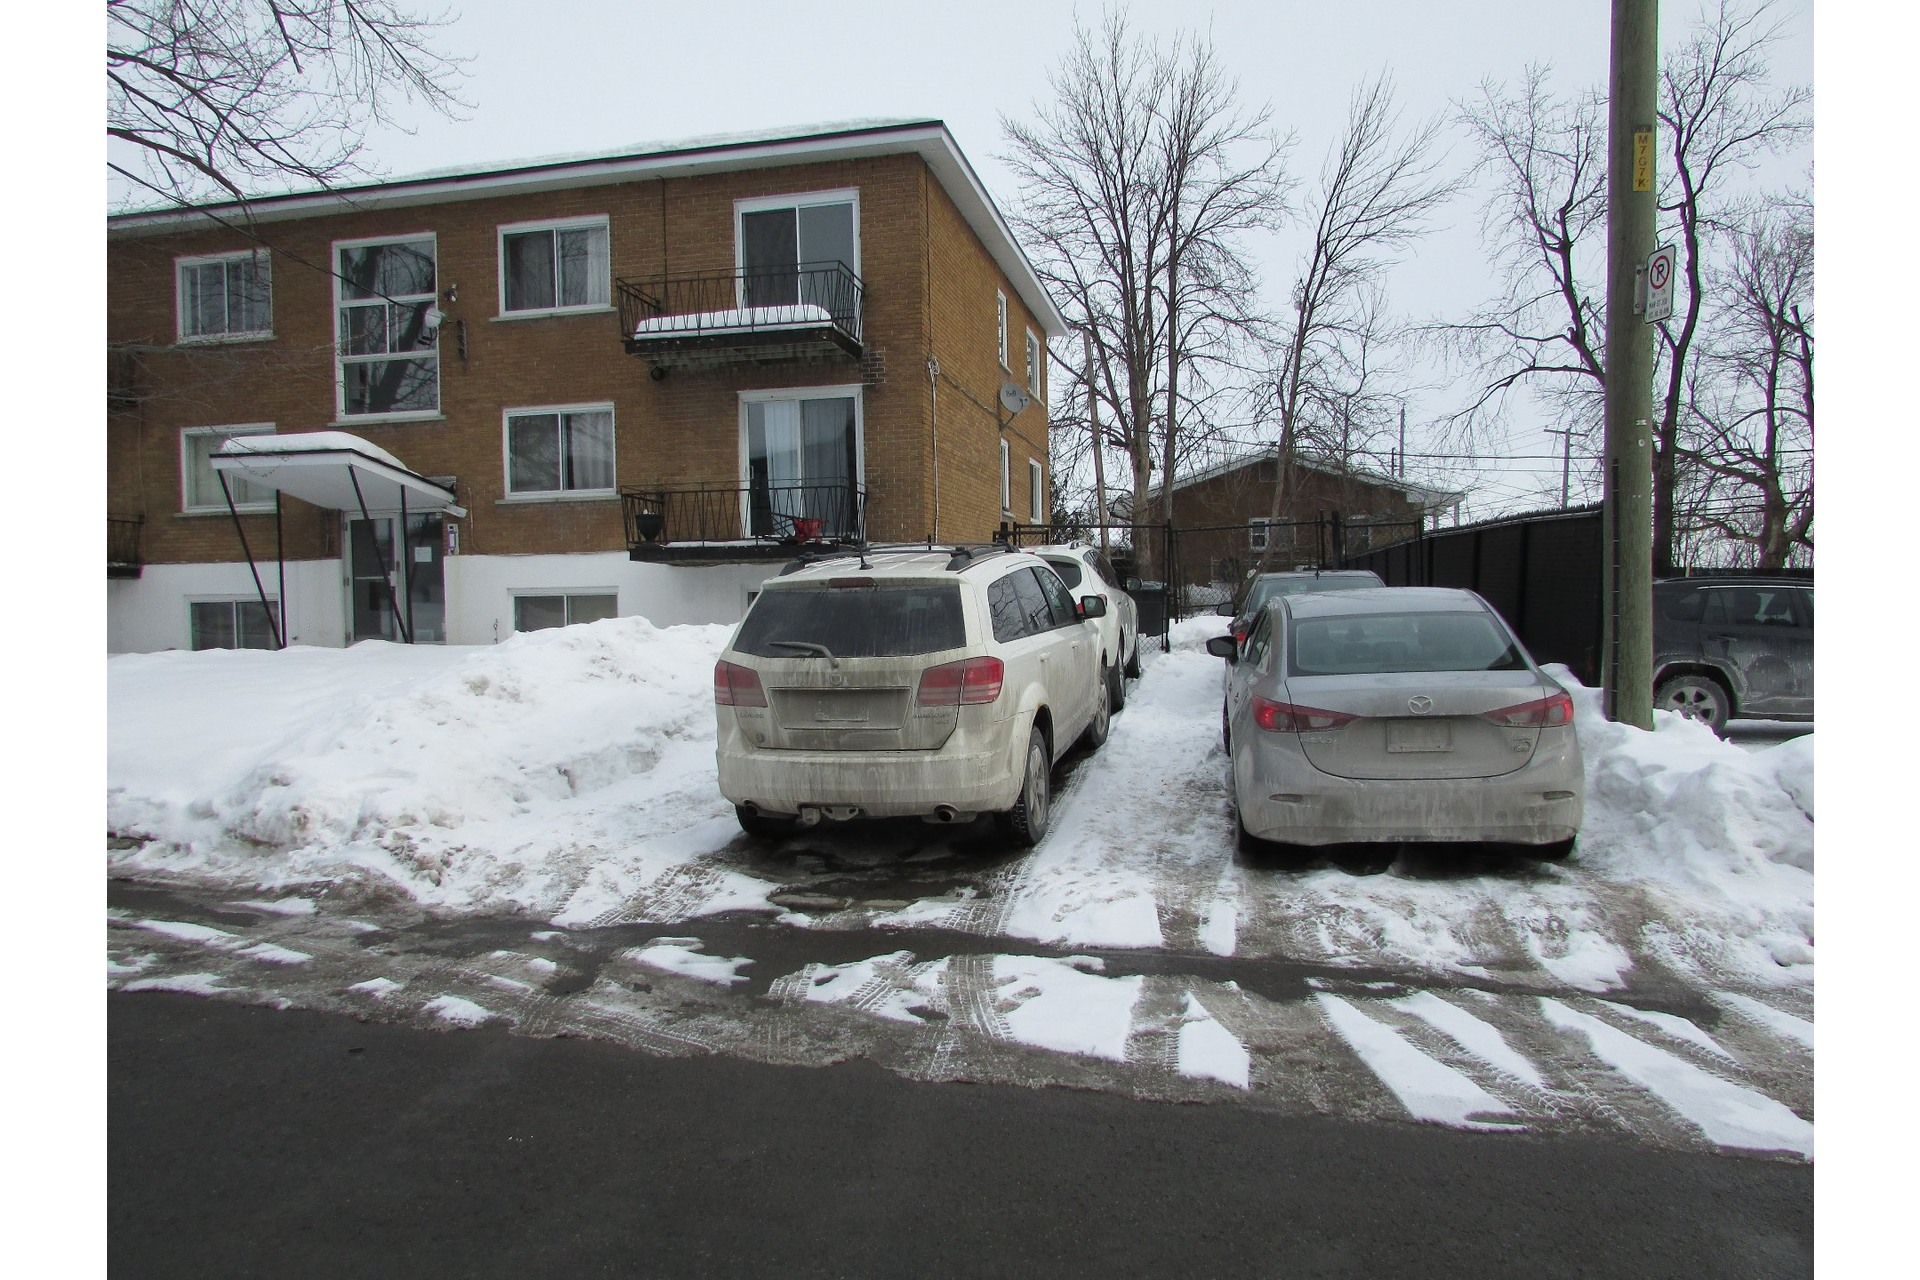 image 2 - Income property For sale Duvernay Laval  - 5 rooms